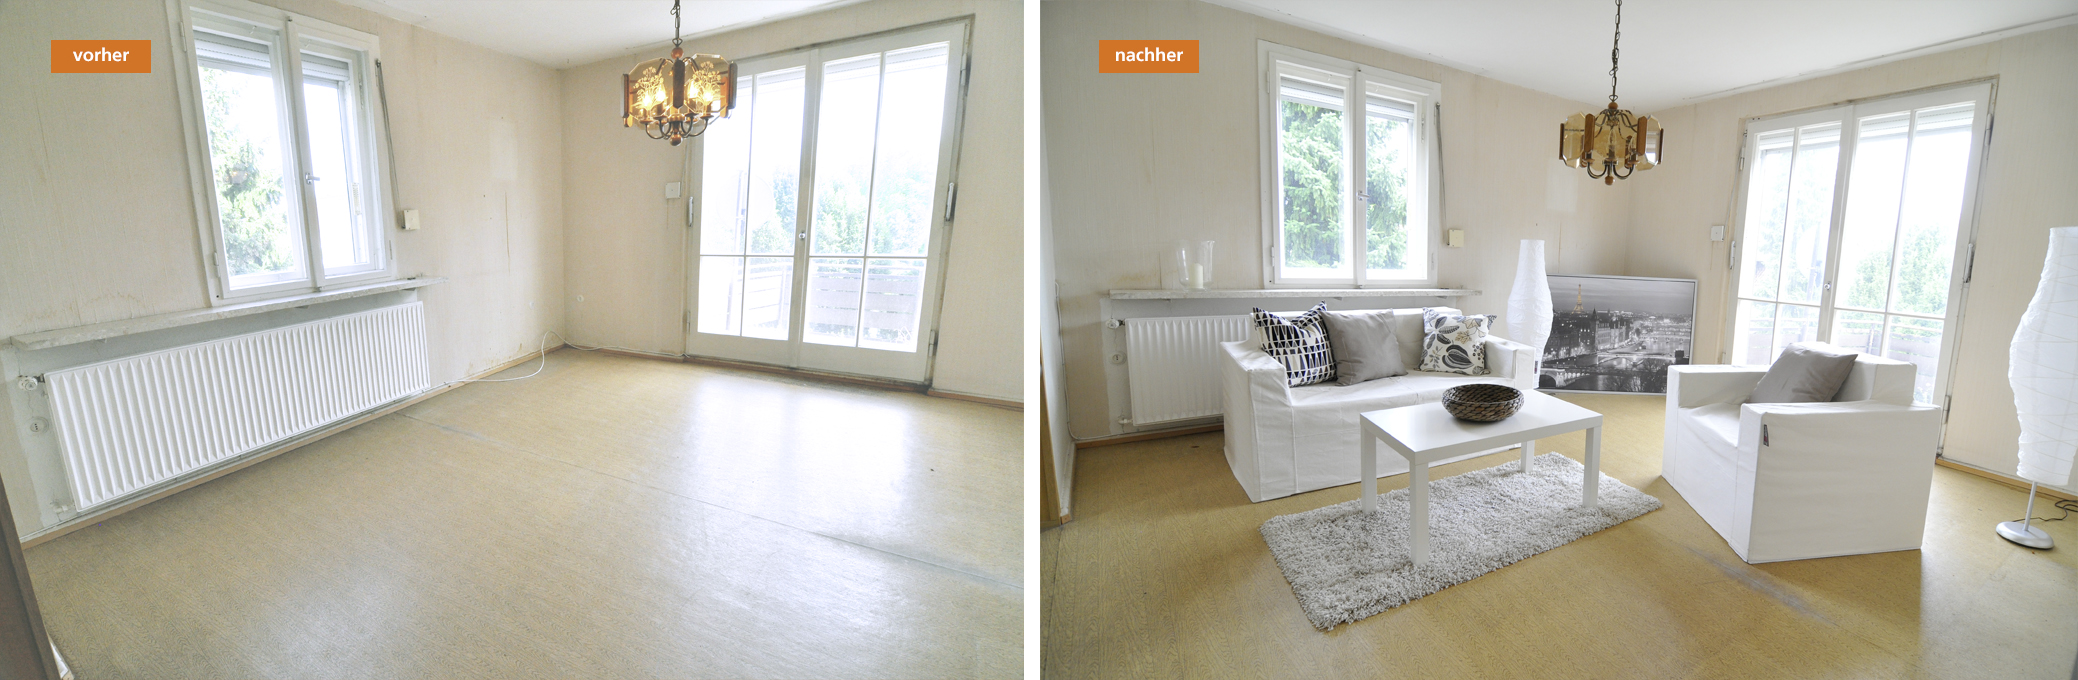 Home Staging | VR-Bank Immobilien Coburg